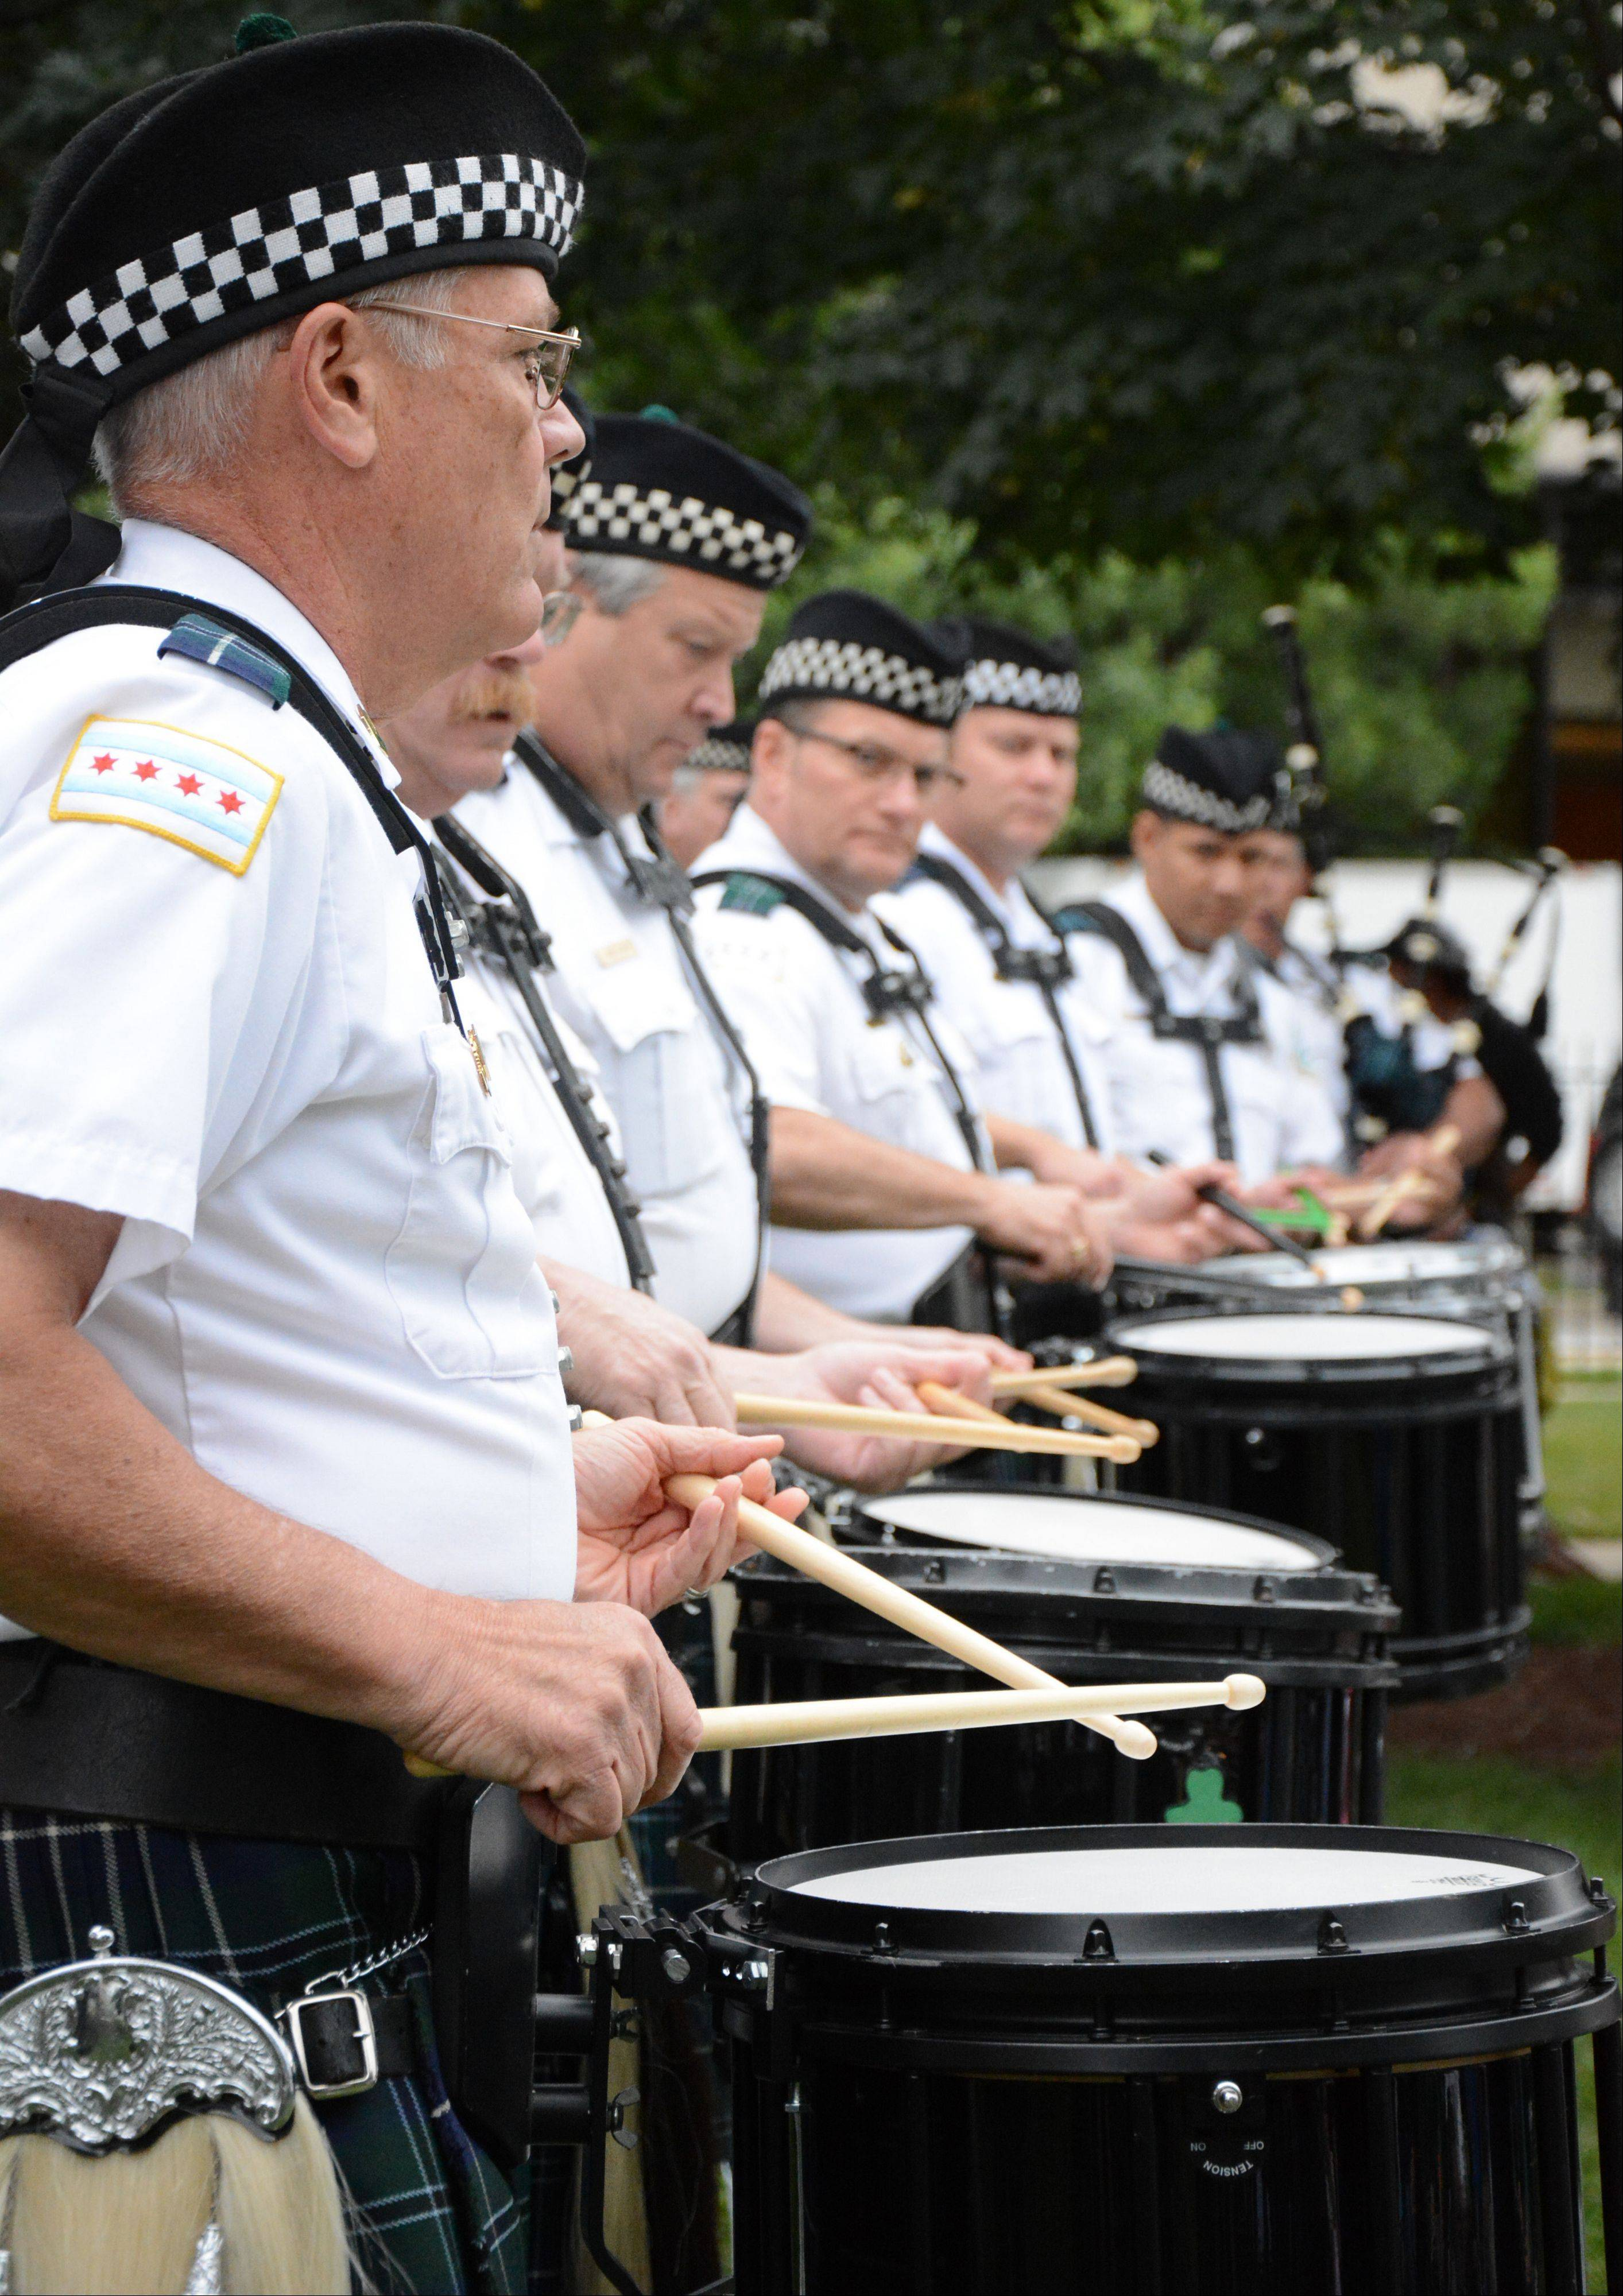 The Chicago Police Pipes and Drums band perform at the Arlington Heights Irish Fest Saturday, July 27.